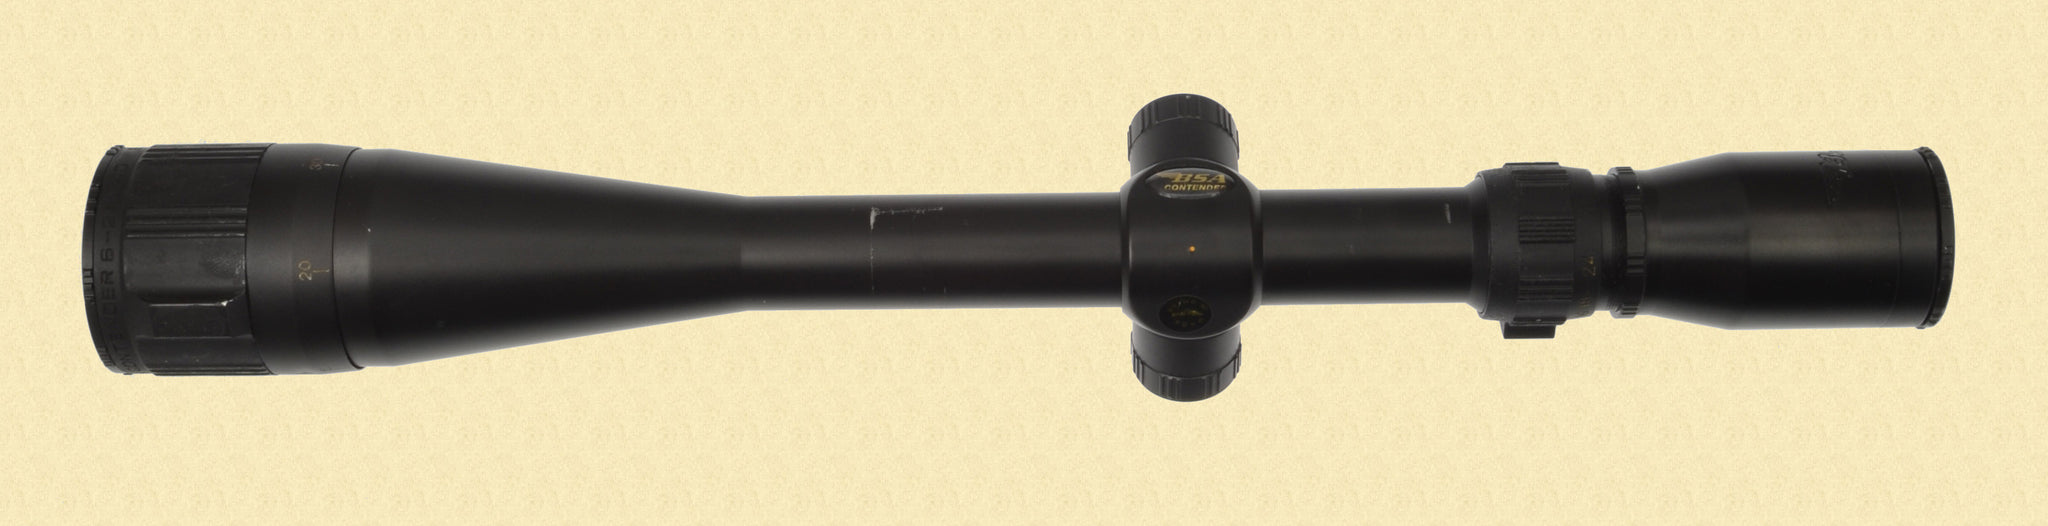 BSA 6-24X40 CONTENDER RIFLESCOPE